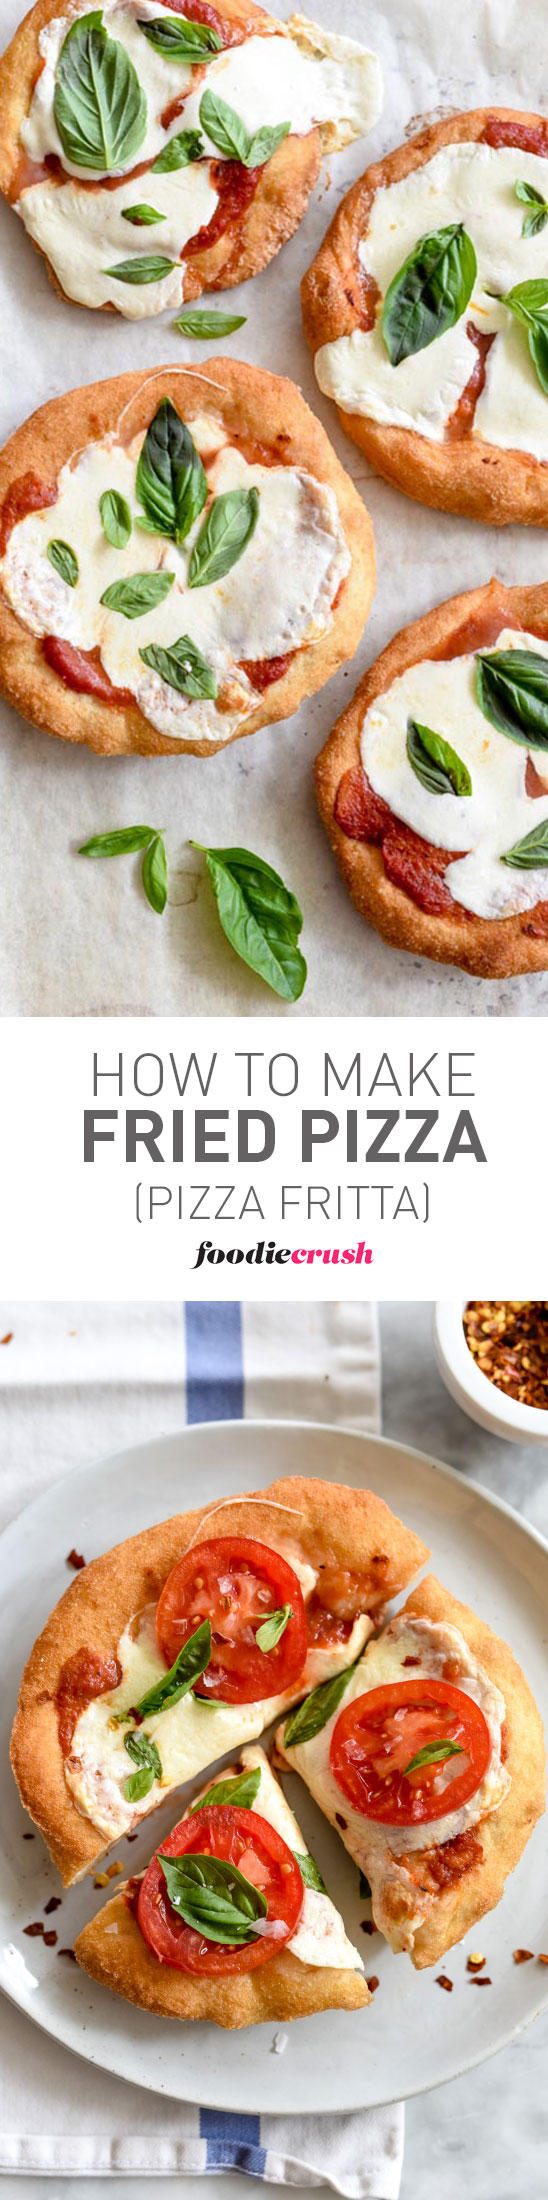 Fried Pizza takes your regular pizza dough to new heights foodiecrush.com